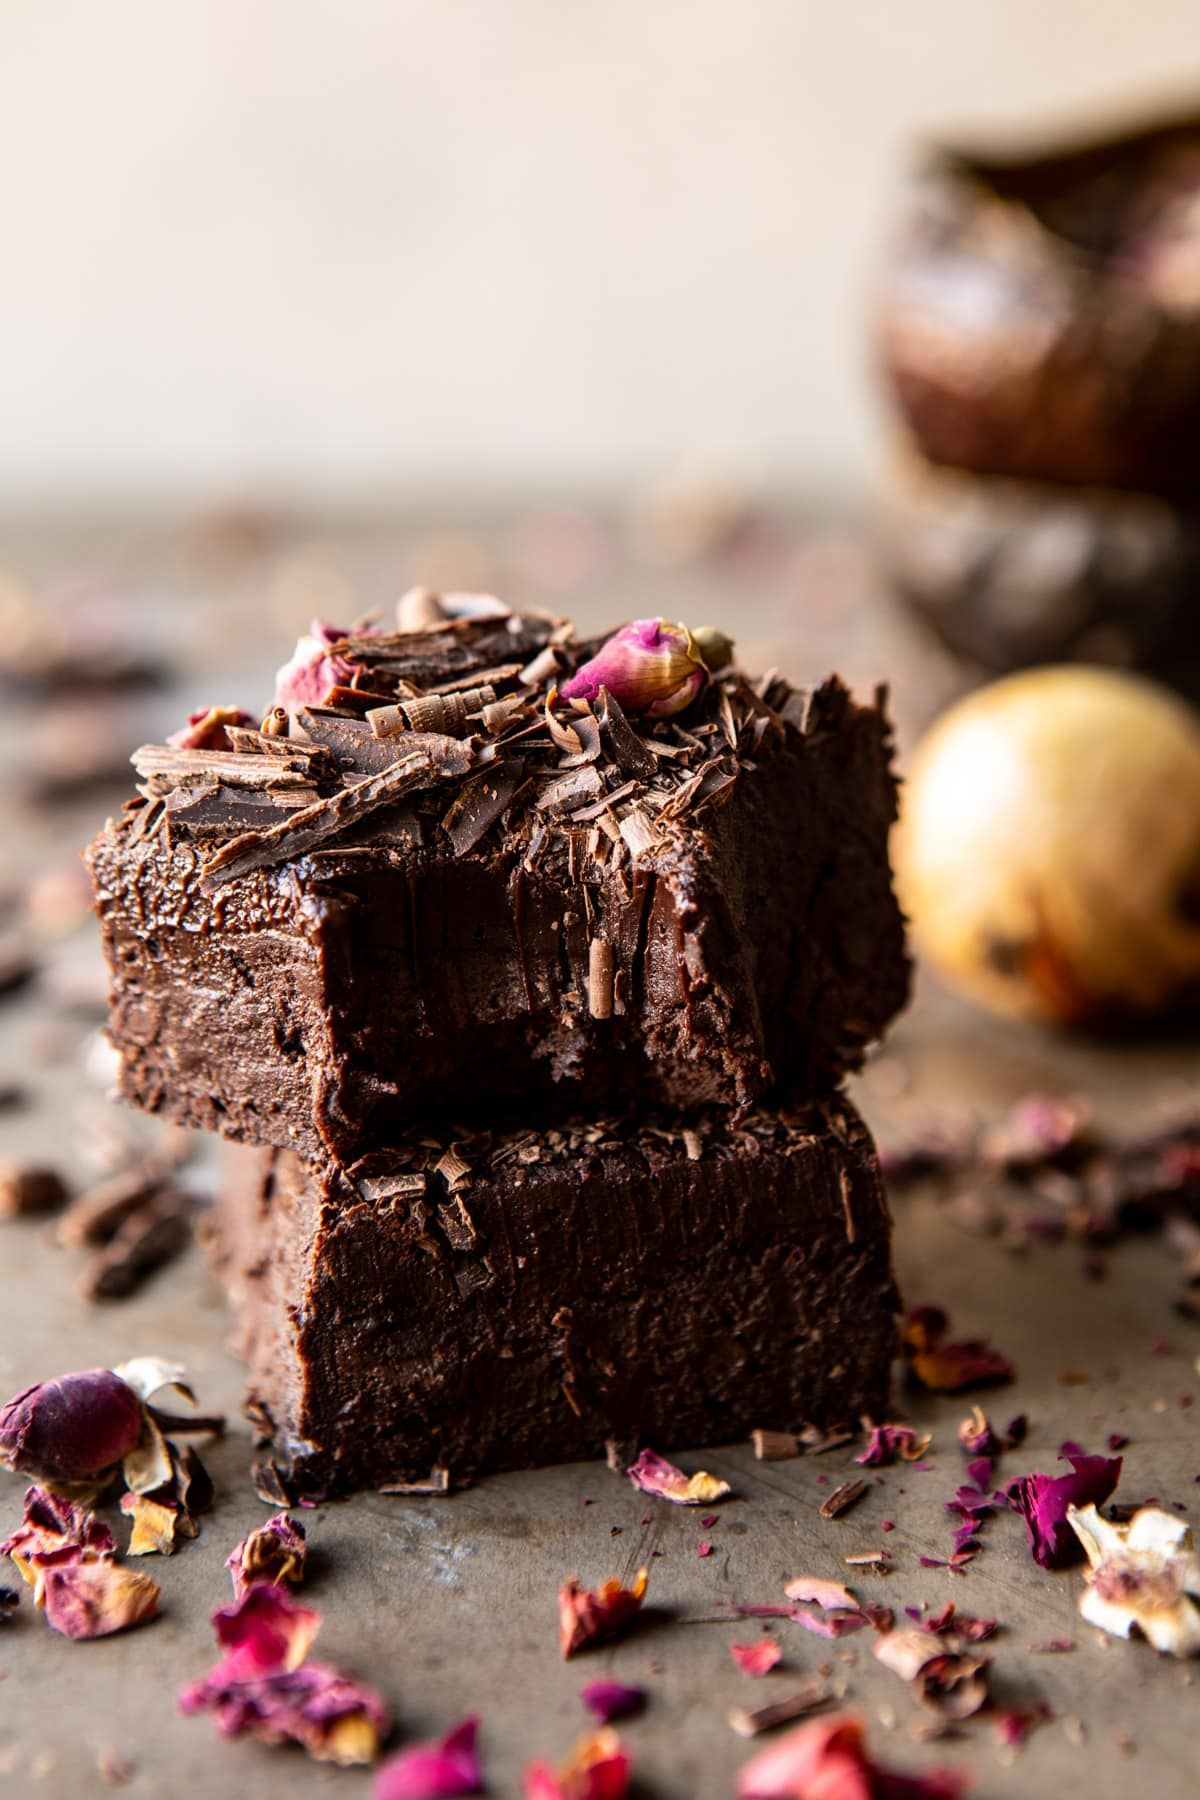 Fudgy Avocado Brownies with Chocolate Fudge Frosting. Trust me, these are SO GOOD, and extra chocol